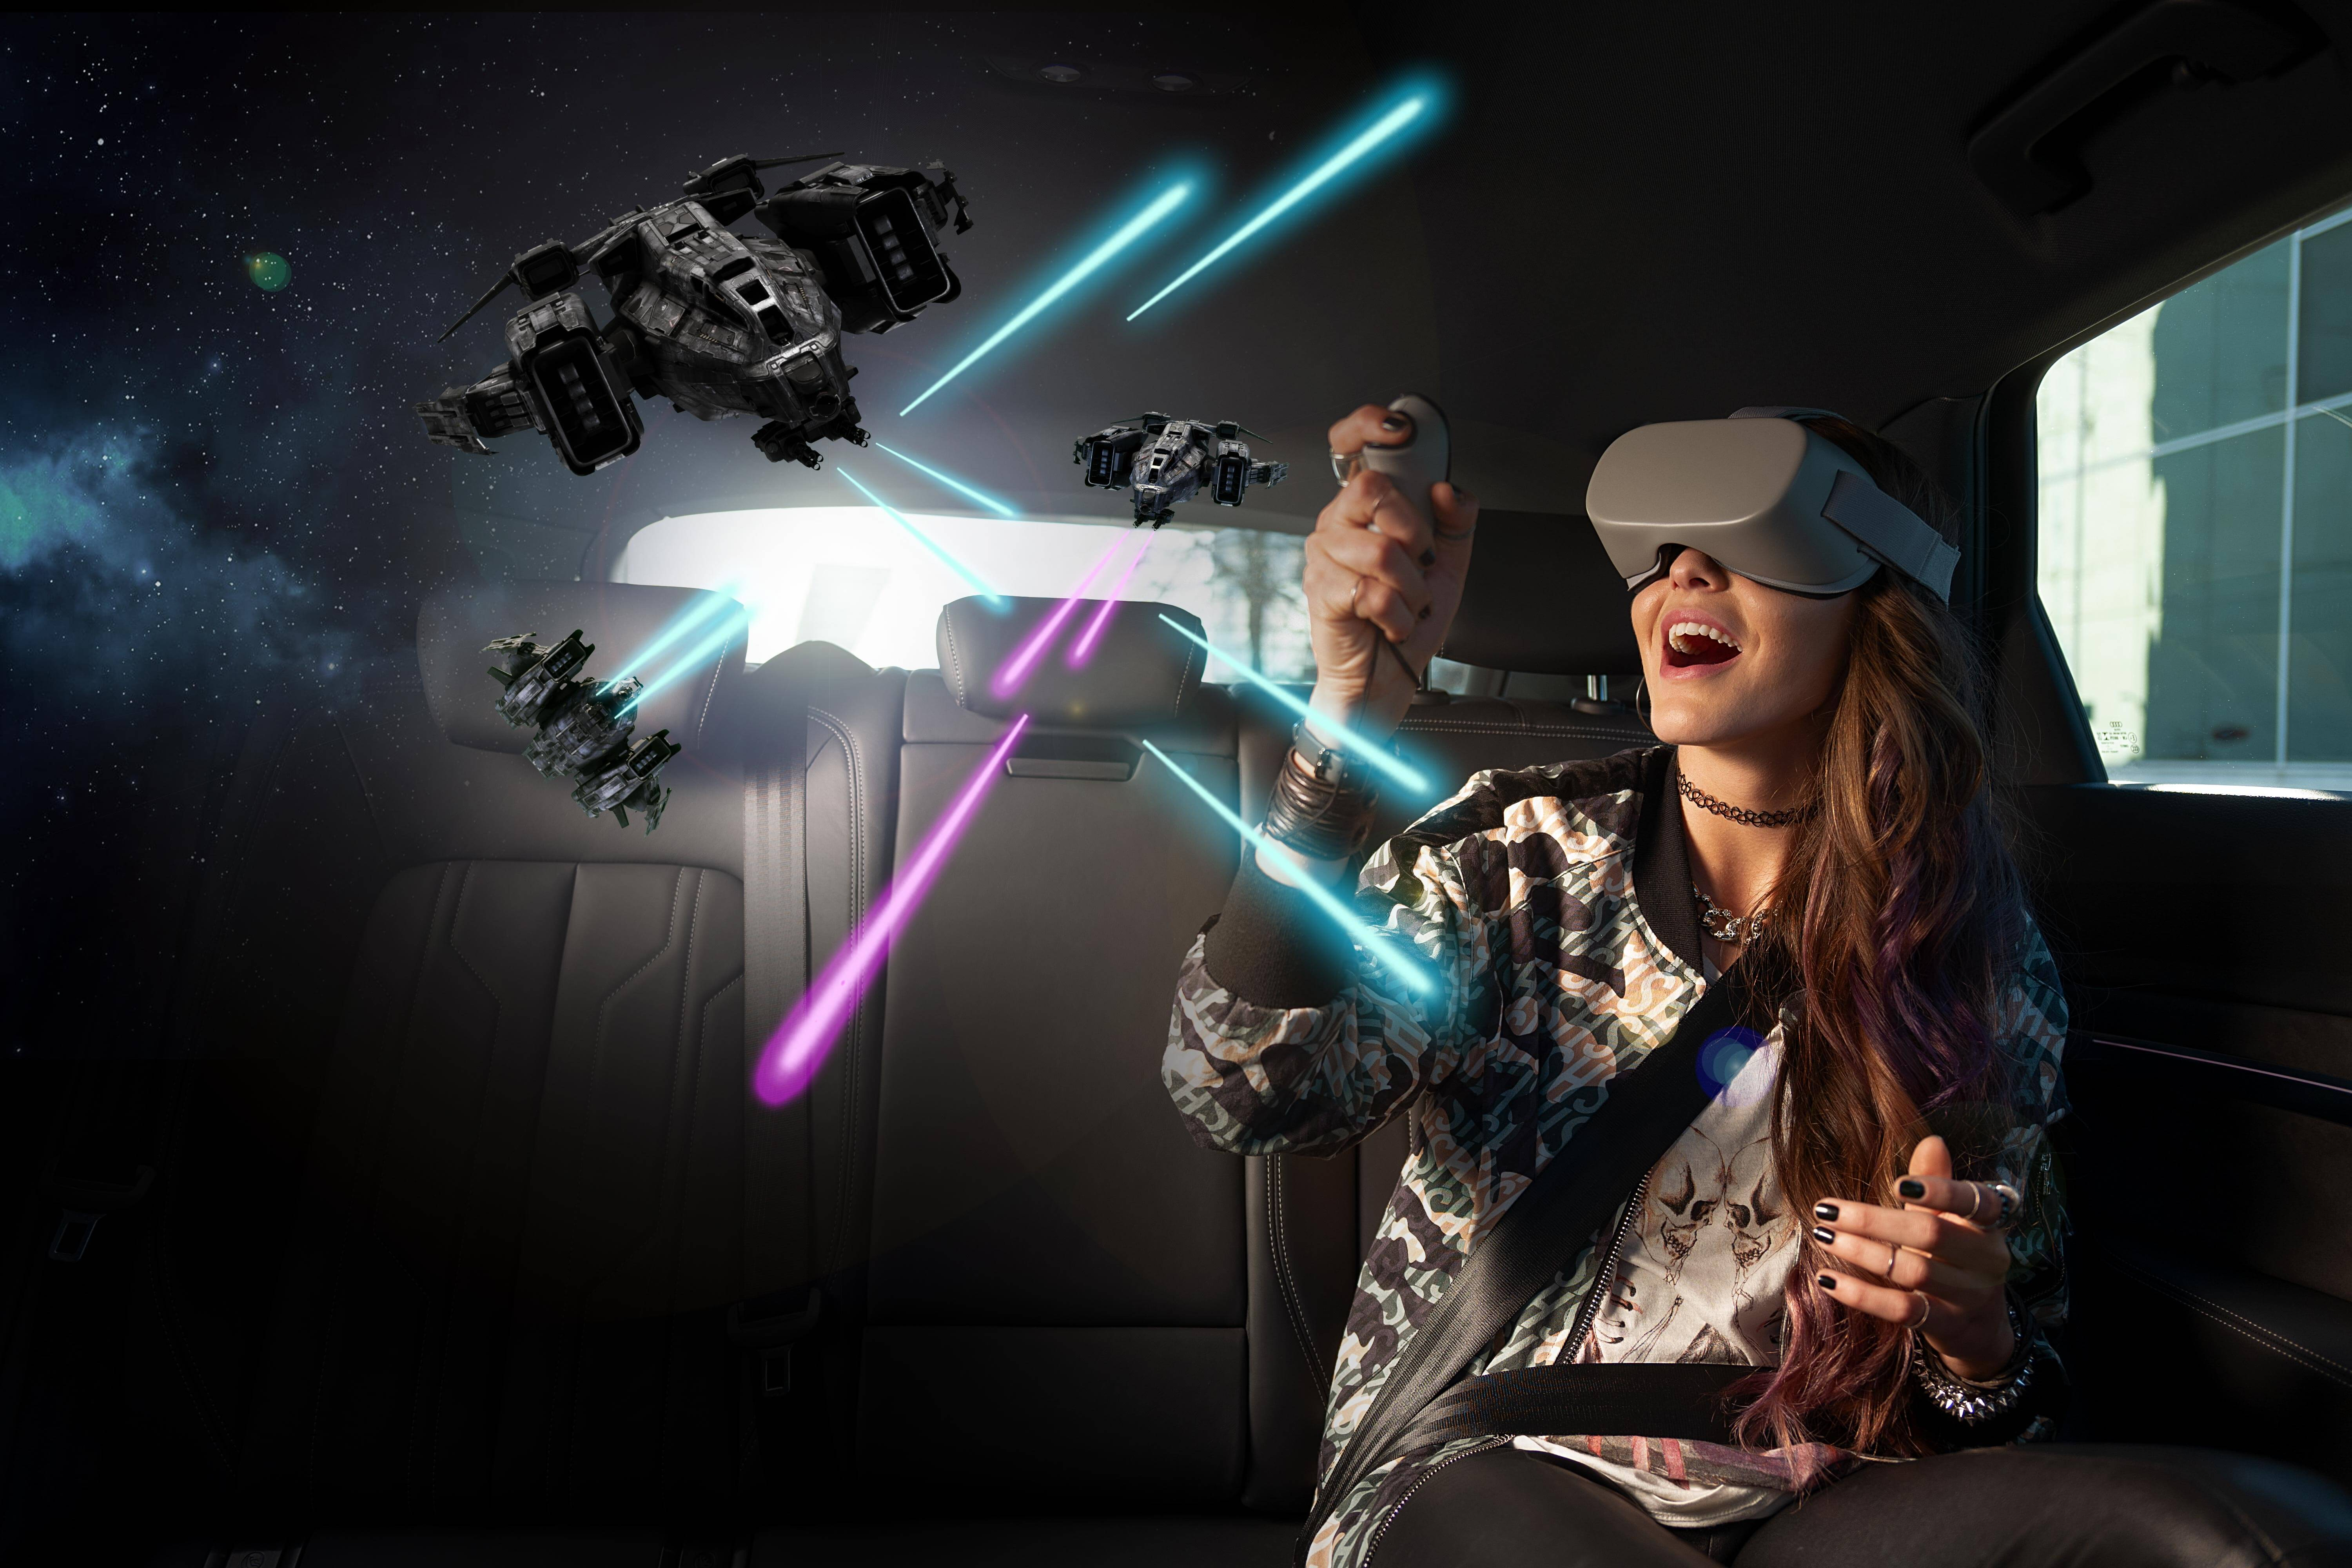 Your first thought on using VR in the car is probably nausea^2 Holoride